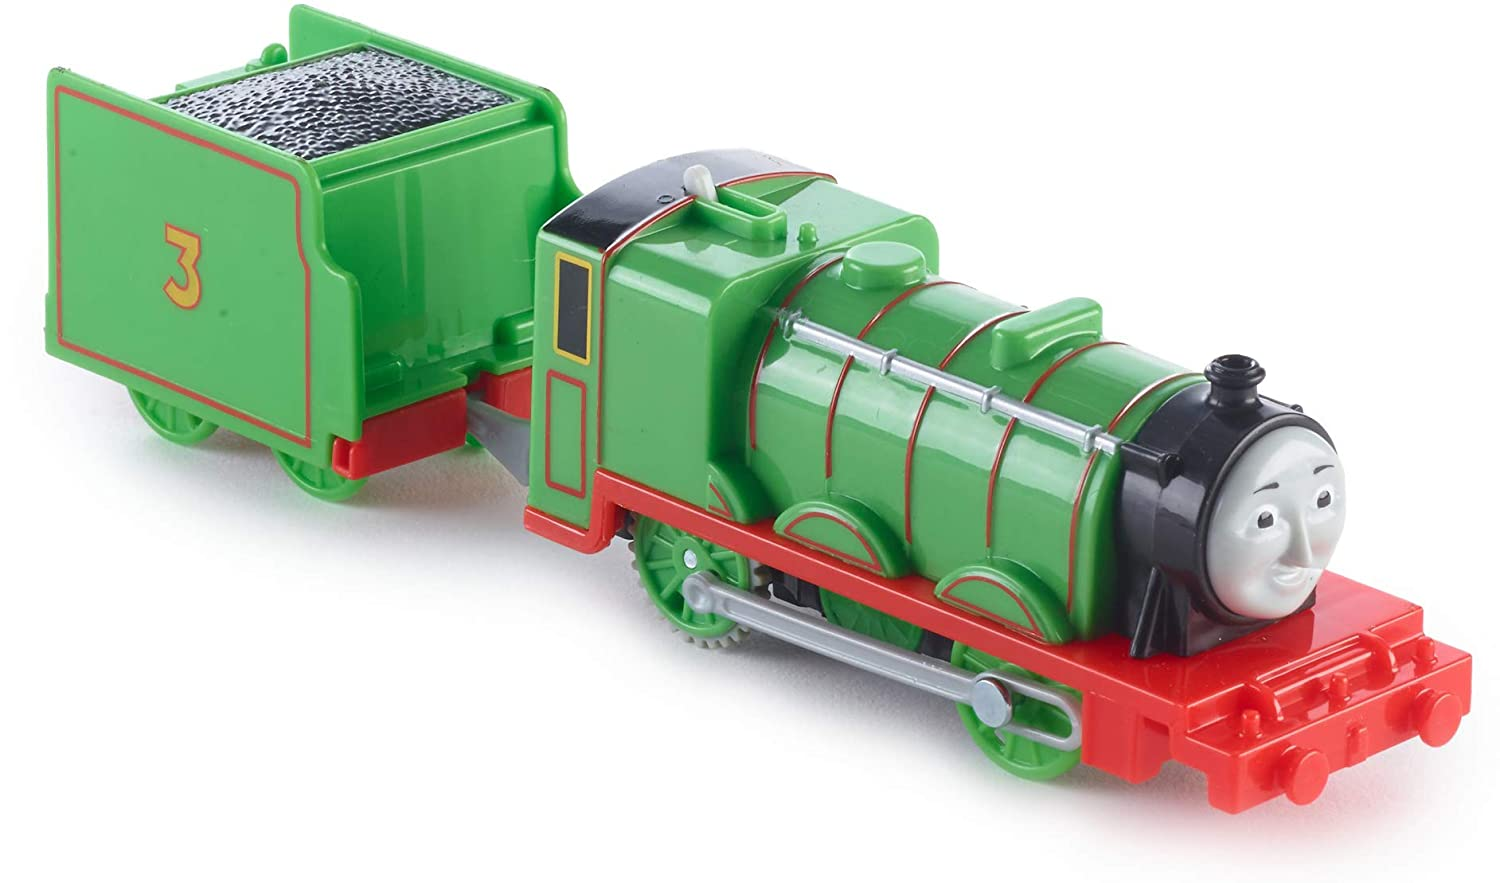 Thomas /& Friends Fisher-Price Trackmaster Engines 4 Pack Toy Multicolor DFN22